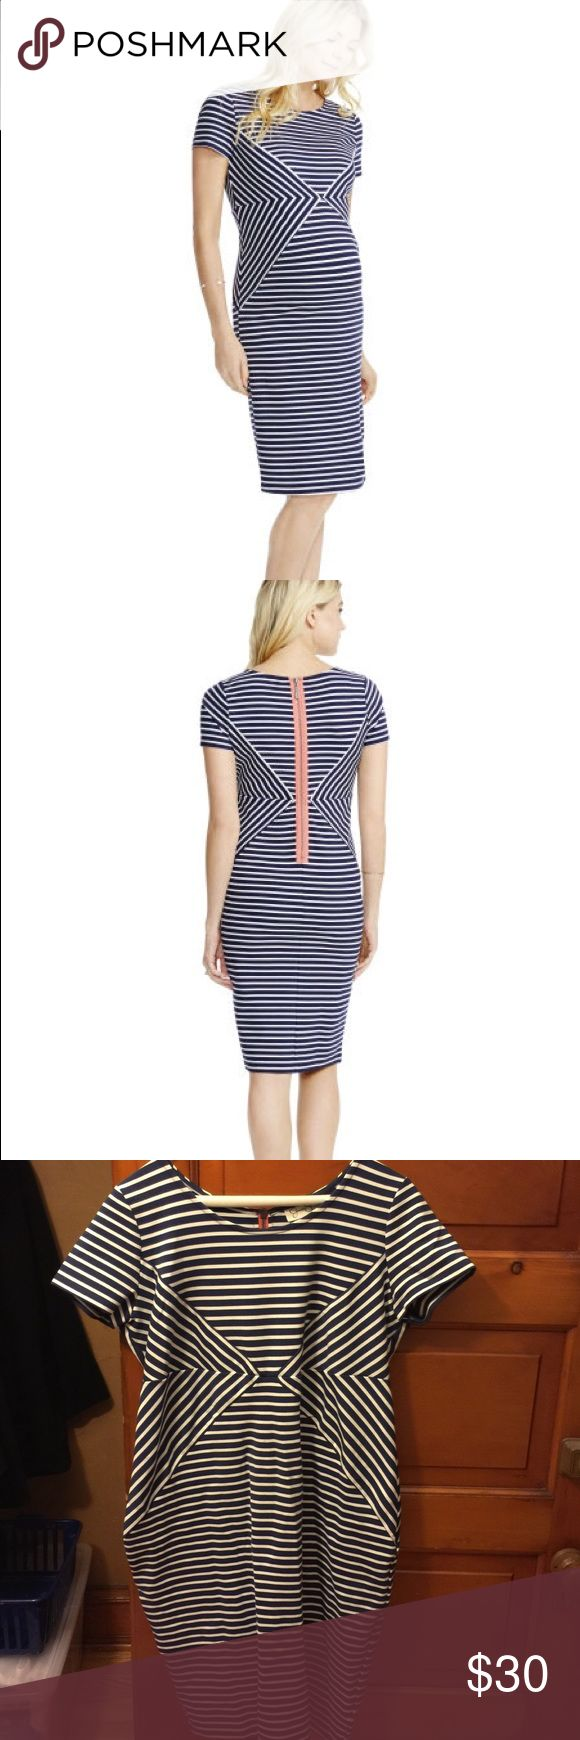 Jessica Simpson maternity dress Blue and white stripe maternity dress. Amazing fit!! My favorite dress this pregnancy worn 4 times total. Pink color zipper detail really fun. Material is thick and stretchy for comfy fit. Rayon nylon and spandex. Jessica Simpson Dresses Midi